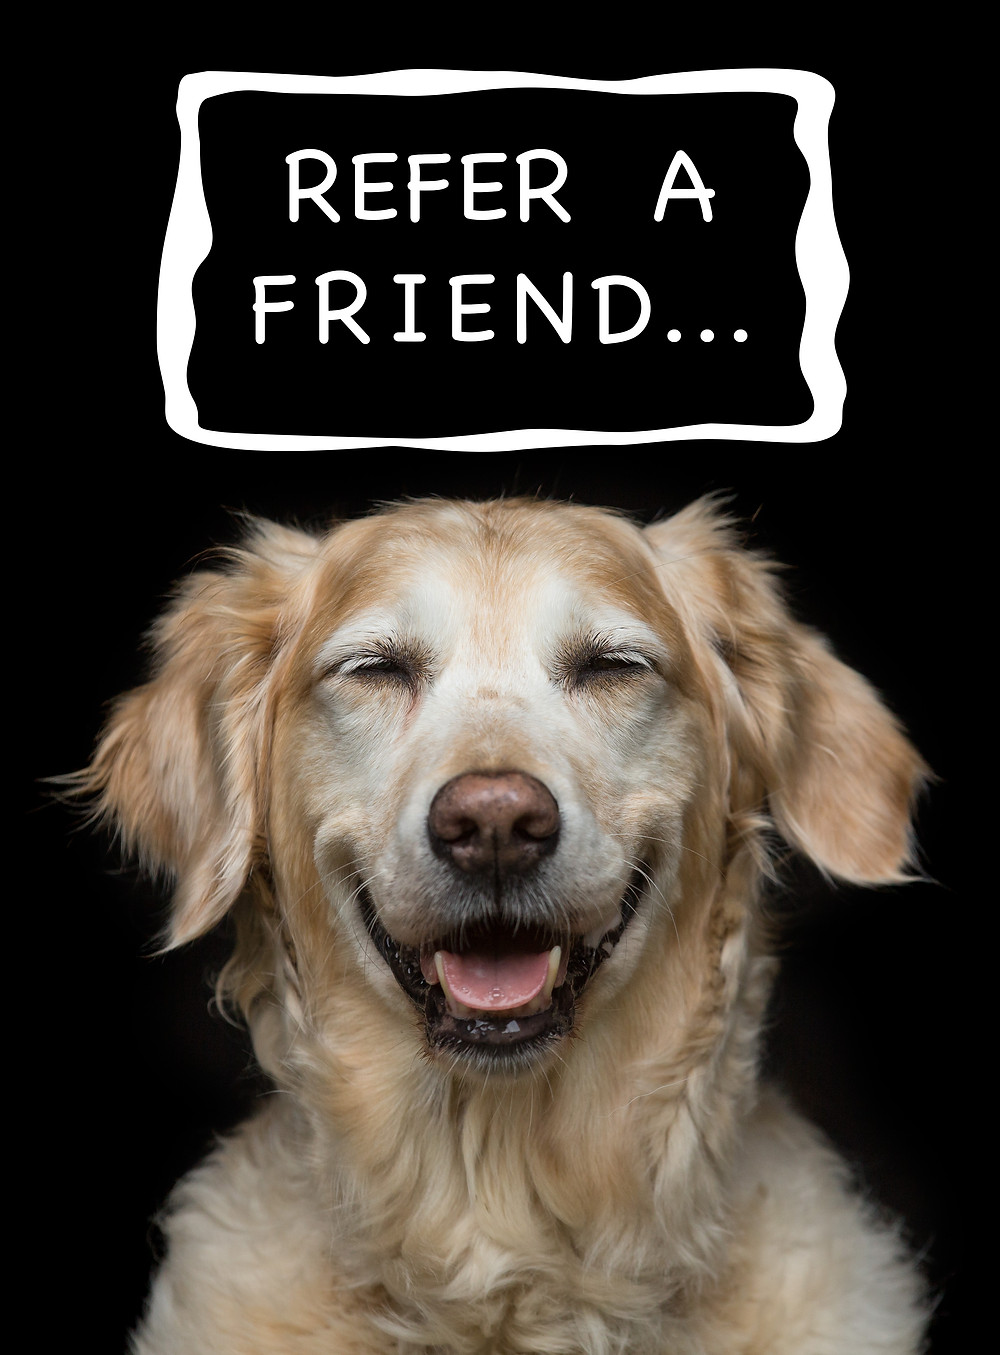 """Have you heard about our new """"Refer a Friend Scheme"""" ...?    No !!    Well as a thank you to all our amazing customers, for every friend you refer to us who goes on to book a session, we will give you a stunning 16 x 12"""" Art Print of your choice.     All you have to do is to ask your friend to let us know YOU referred them and then wait for your THANK YOU email to arrive."""